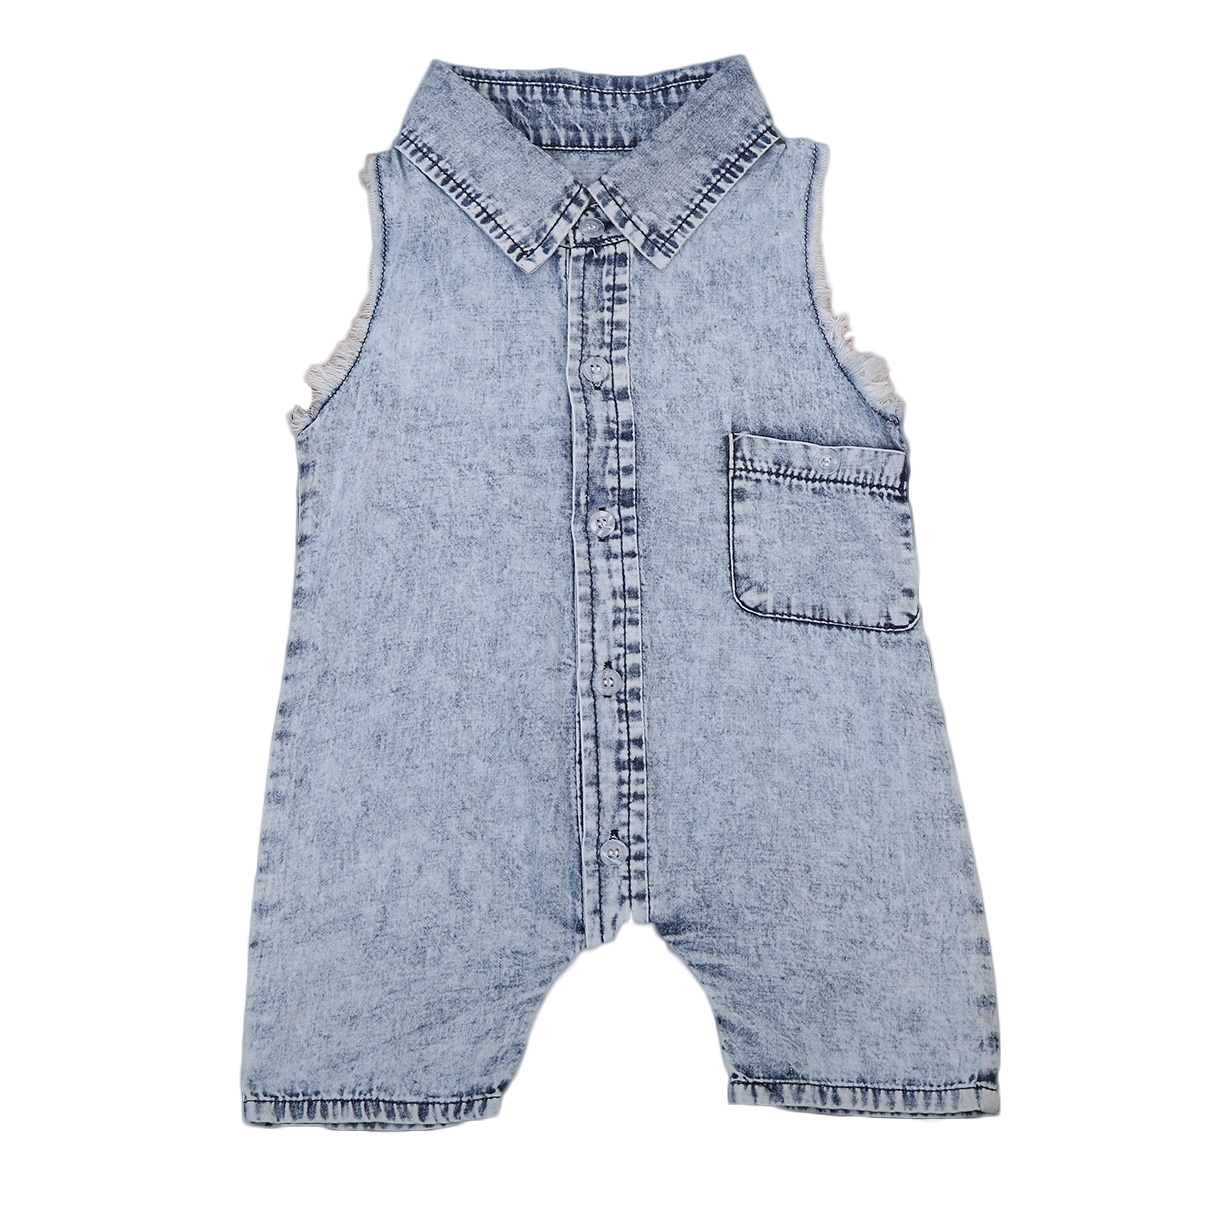 Pudcoco Baby Boys Denim Rompers With Turn Down Collar Tank Romper Overall Sleeveless Pocket